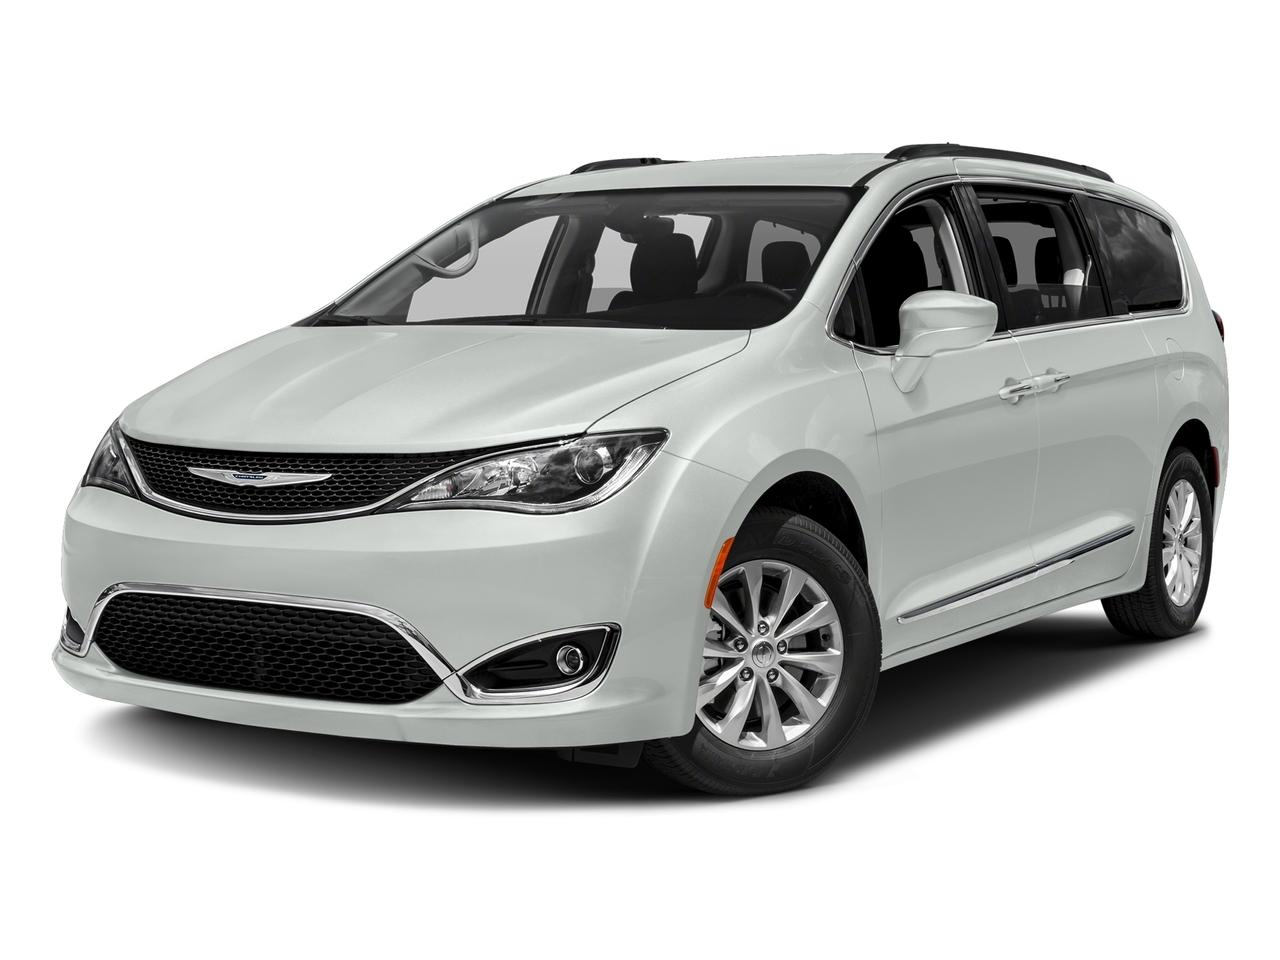 2017 Chrysler Pacifica Vehicle Photo in Pittsburg, CA 94565